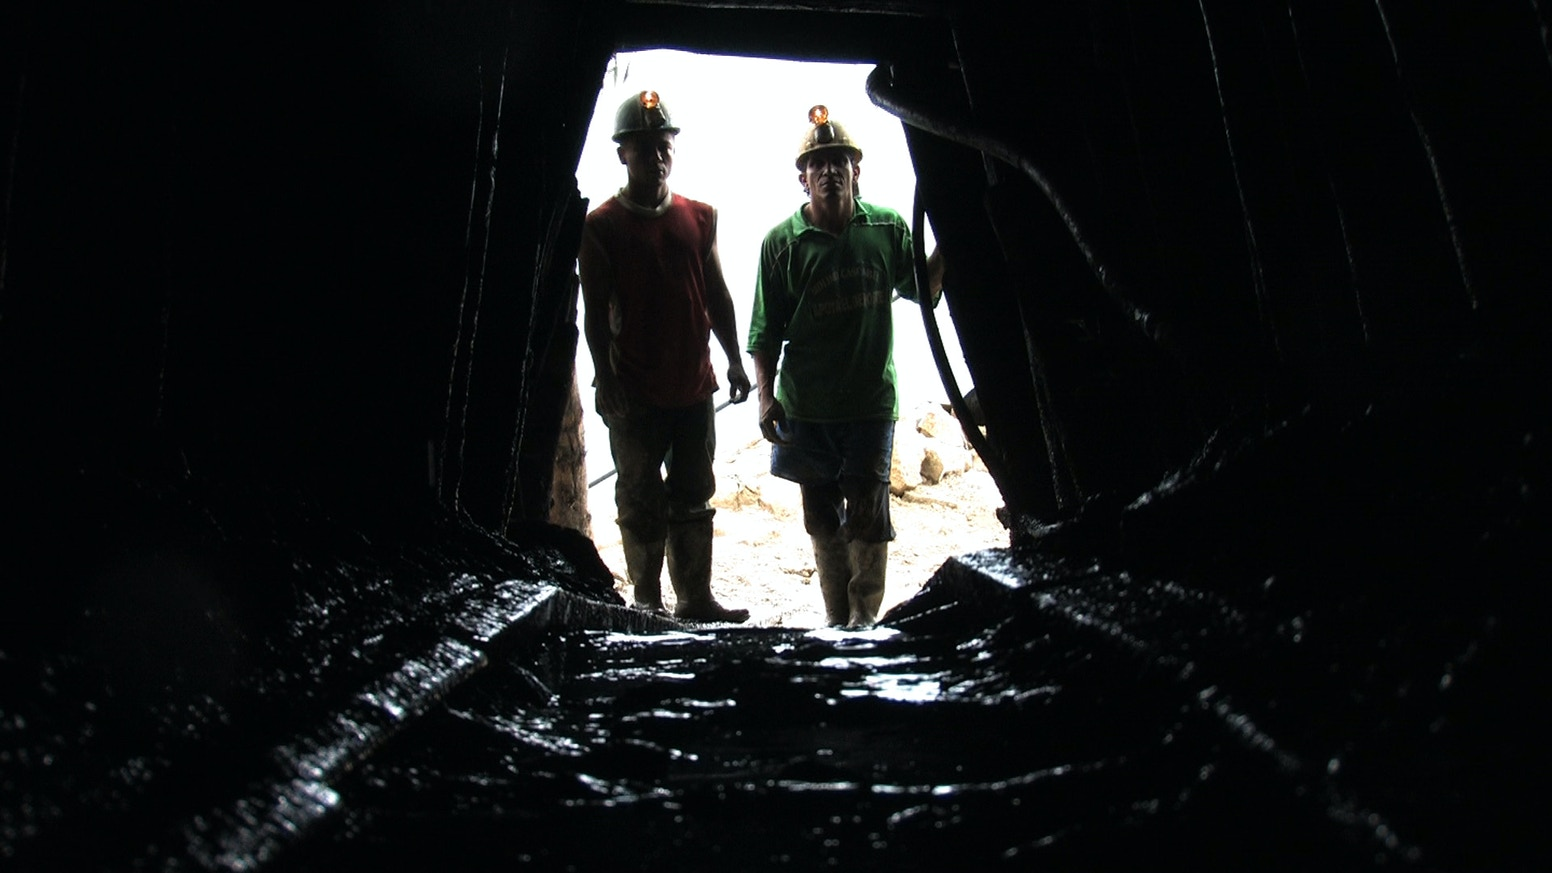 MARMATO - Colombian Mining Documentary Seeks Finishing Funds